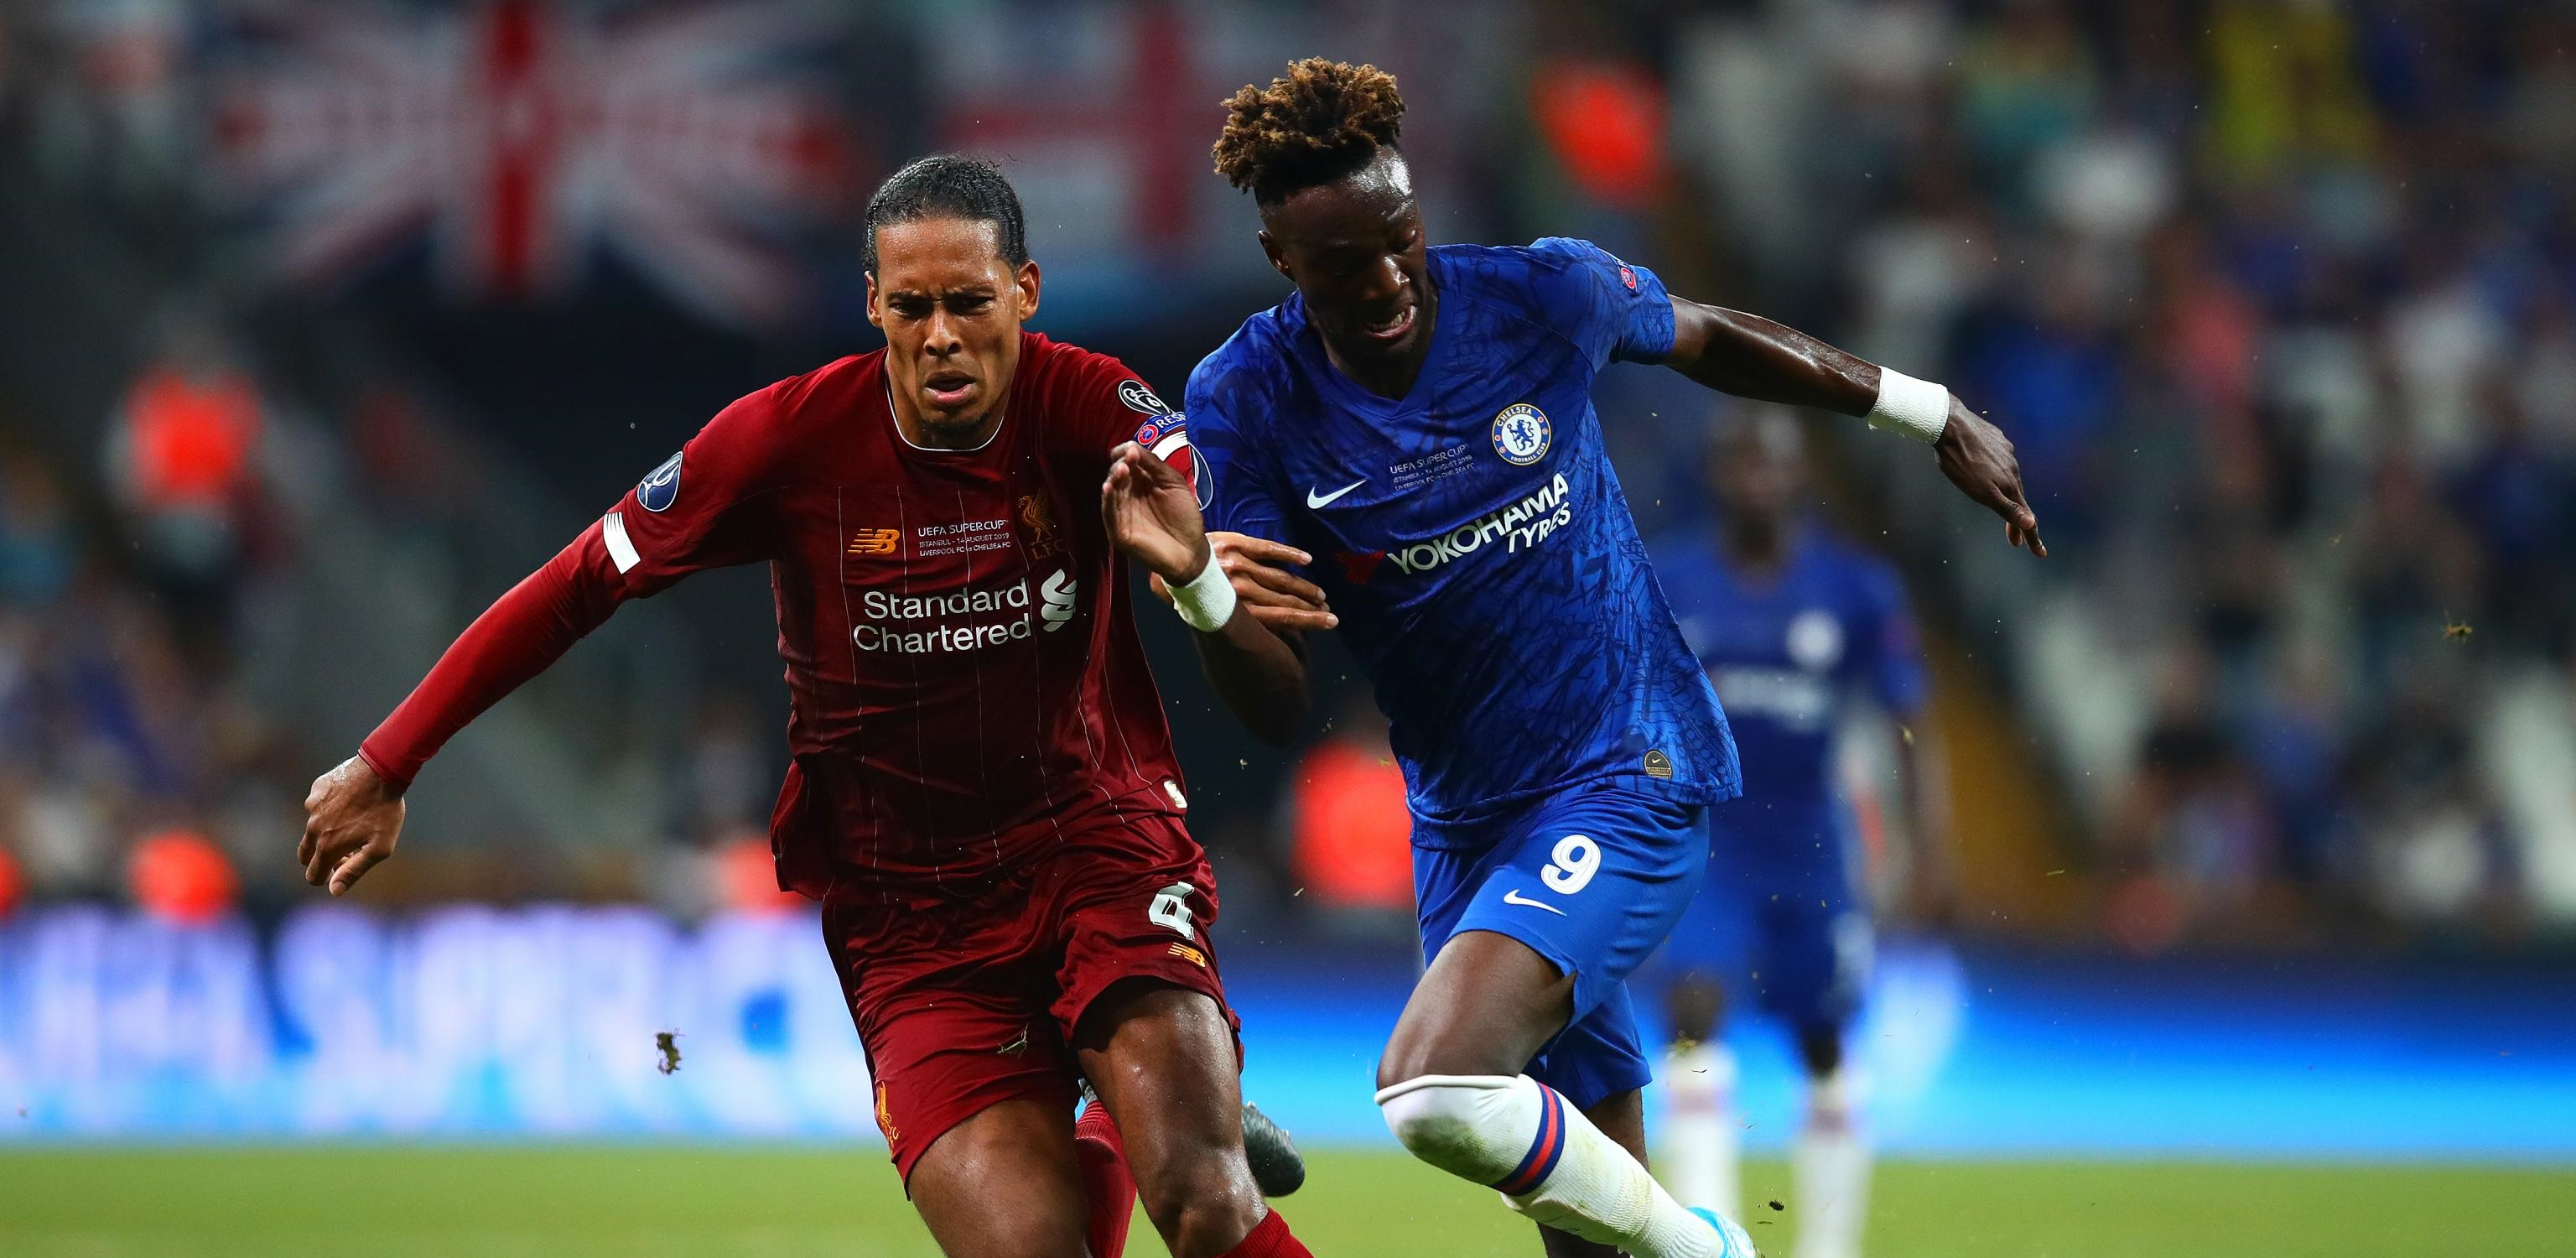 Liverpool can make Chelsea look silly by repeating Sturridge mistake – opinion